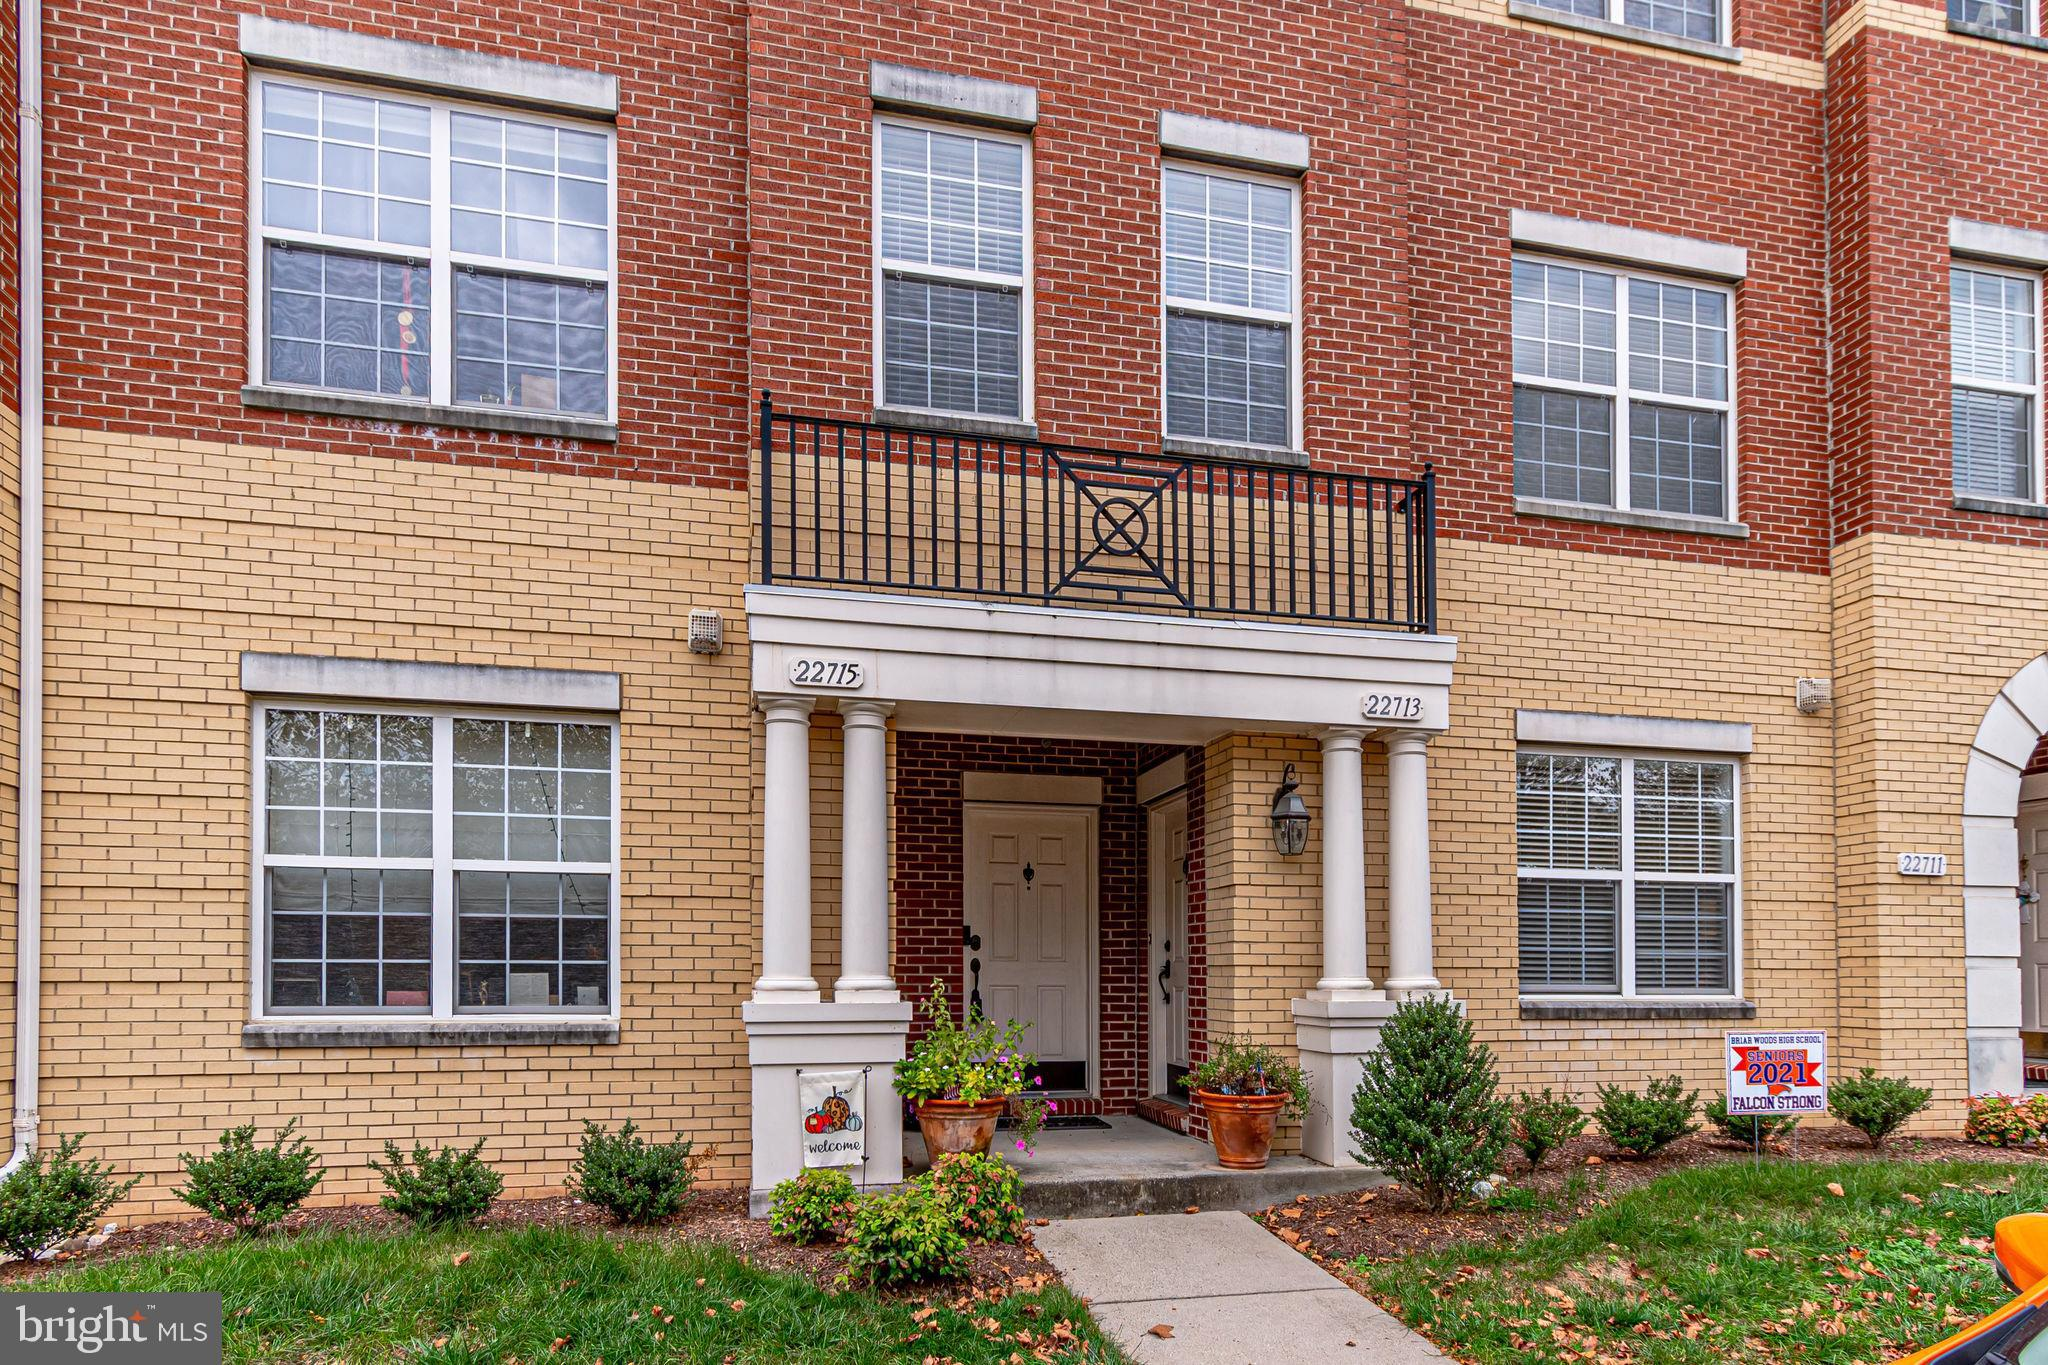 Public Open House Sunday 10/25 from 1-3pm. Stunning 3BR, 2.5BA condo/townhouse with attached one car